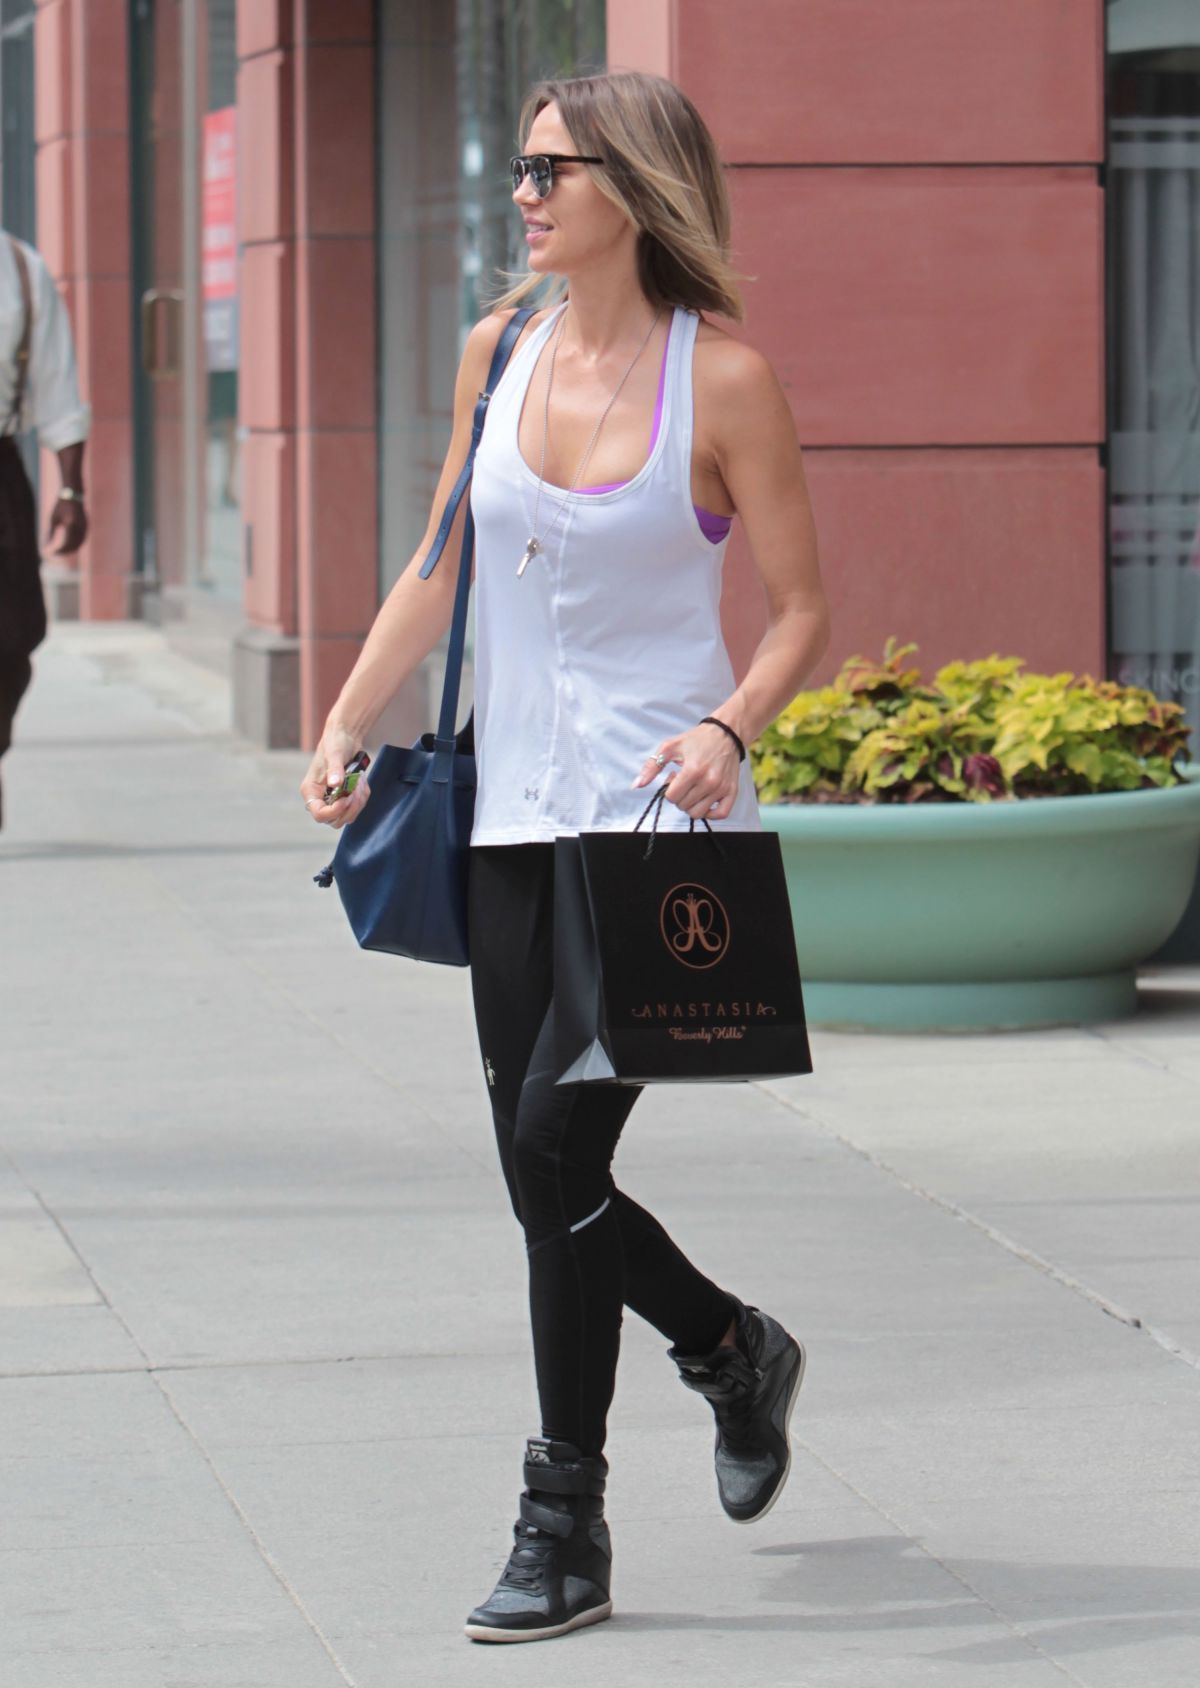 arielle-kebbel-out-and-about-in-beverly-hills-04-26-2017_5.jpg (1200×1688)